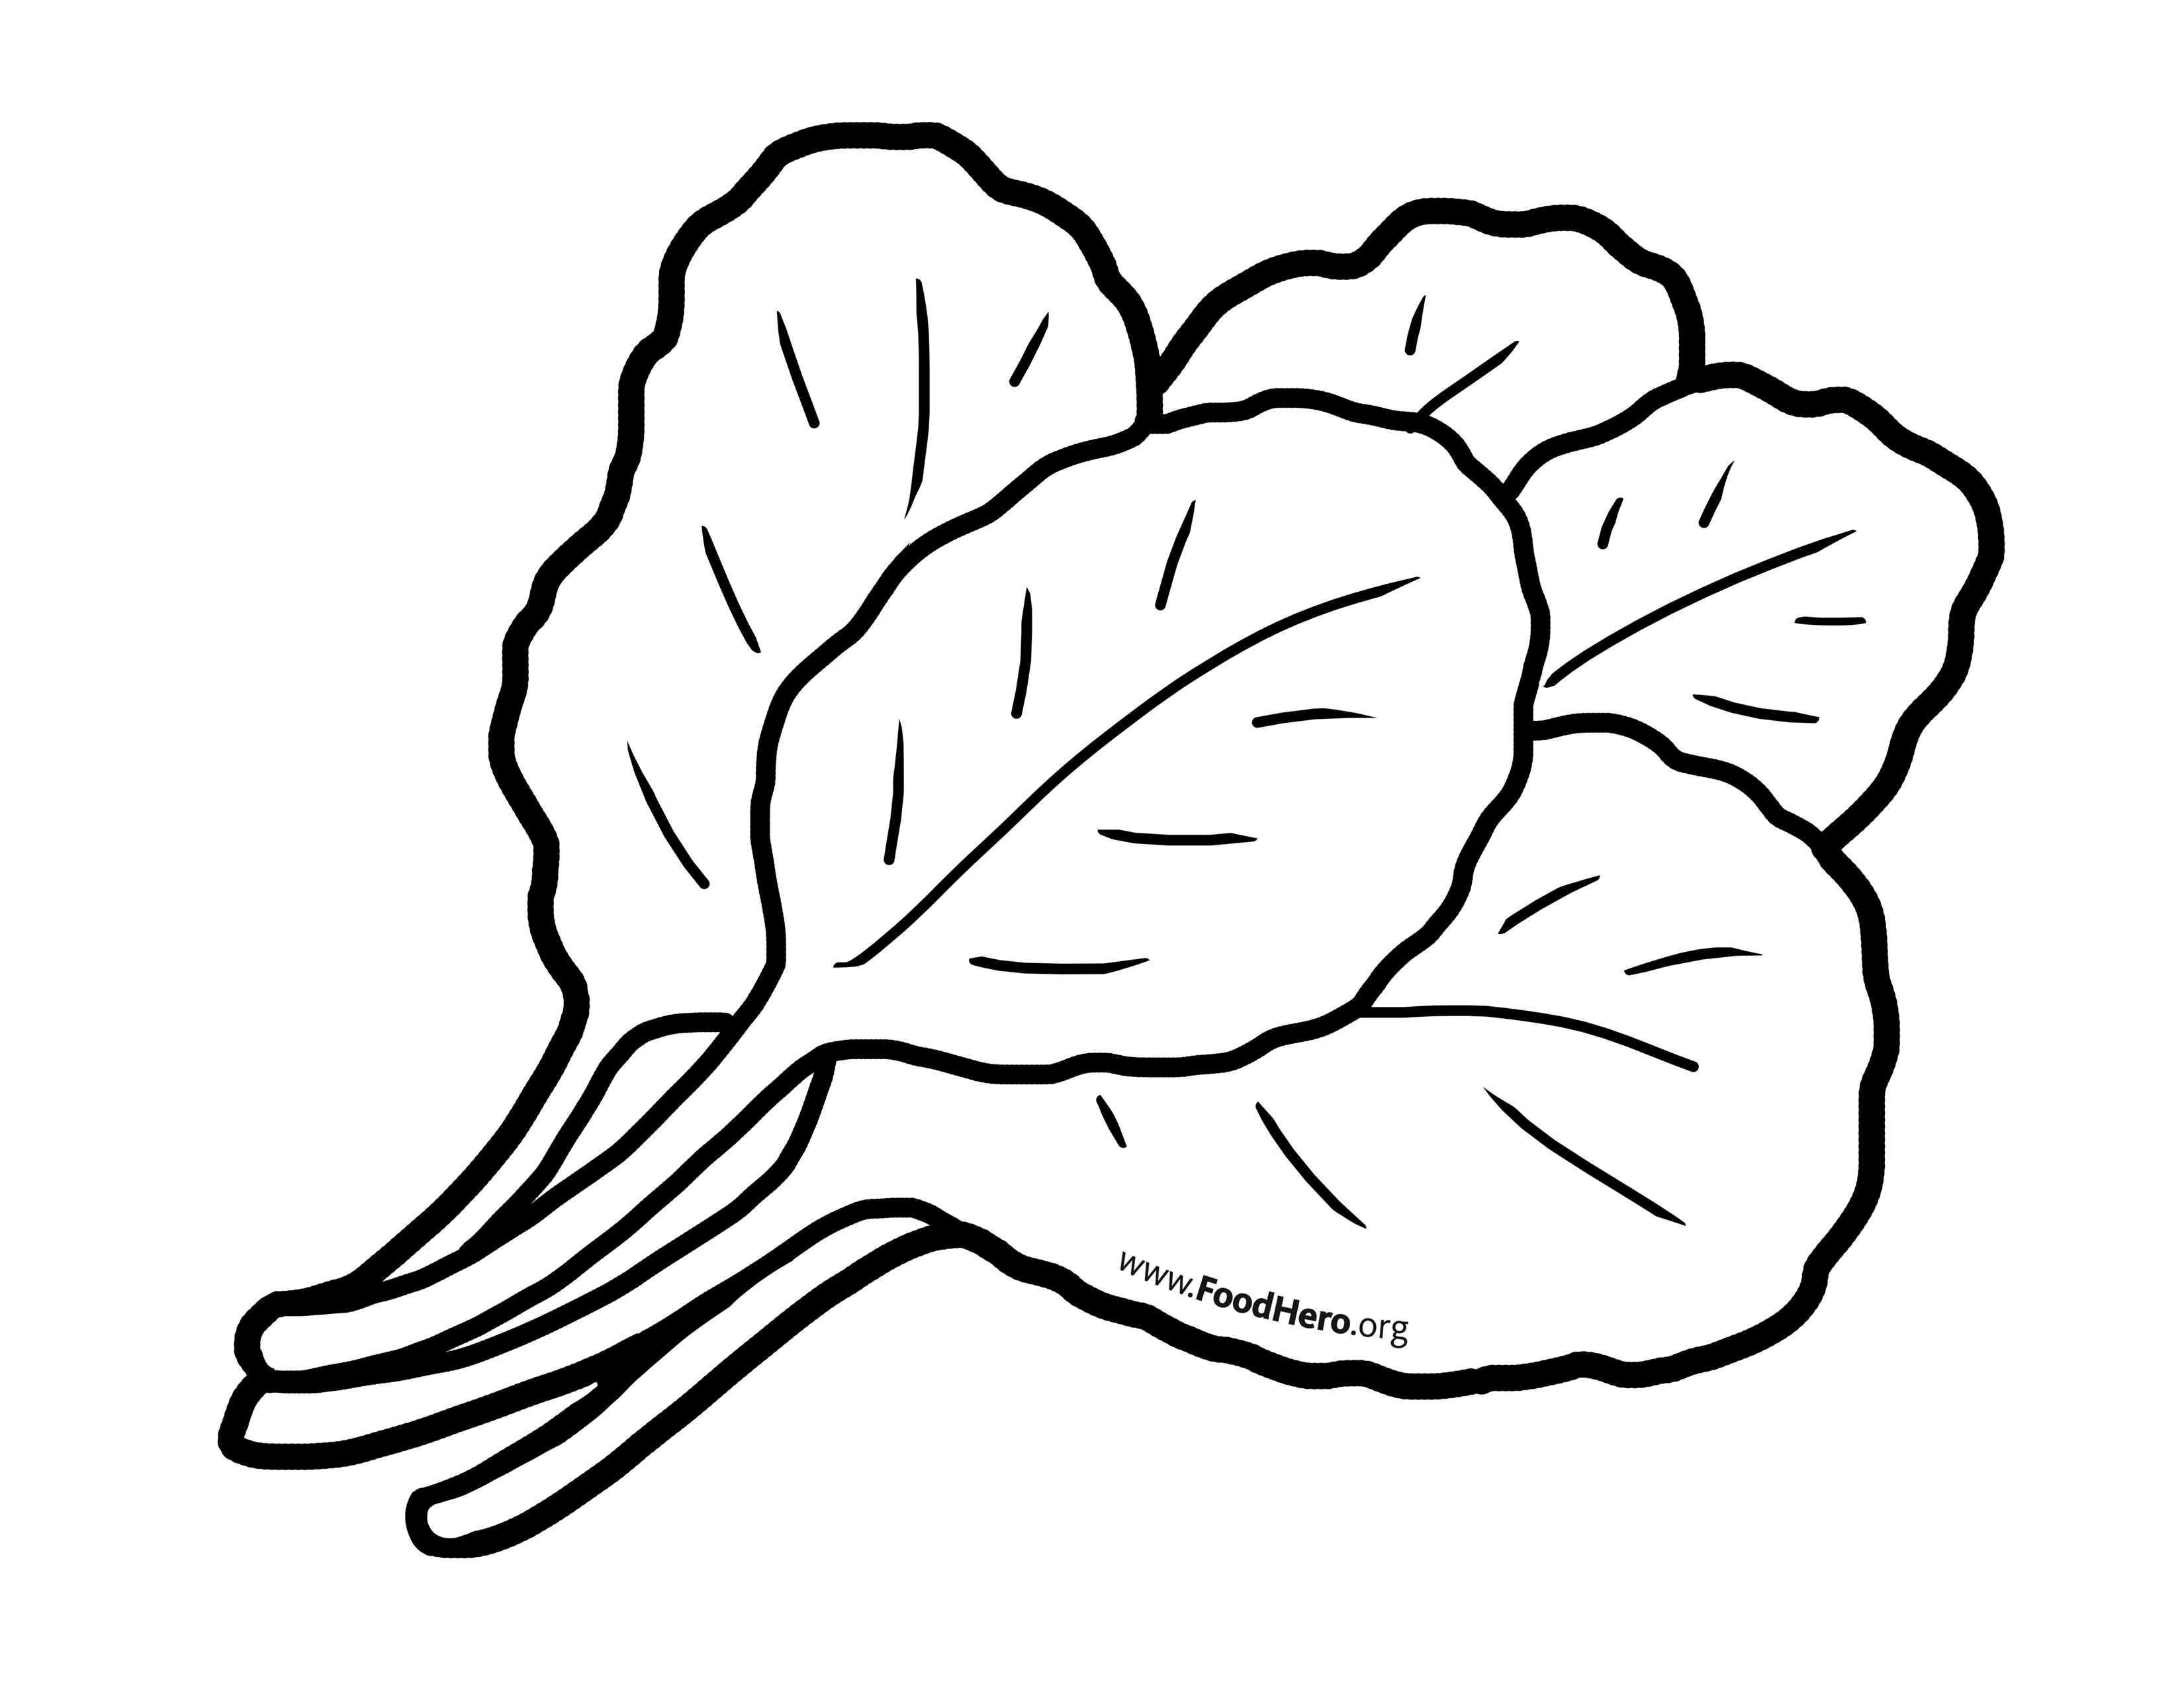 Veggies in pot black and white outline clipart banner black and white download Chollard Greens illustration. #foodhero #bullentinboards ... banner black and white download